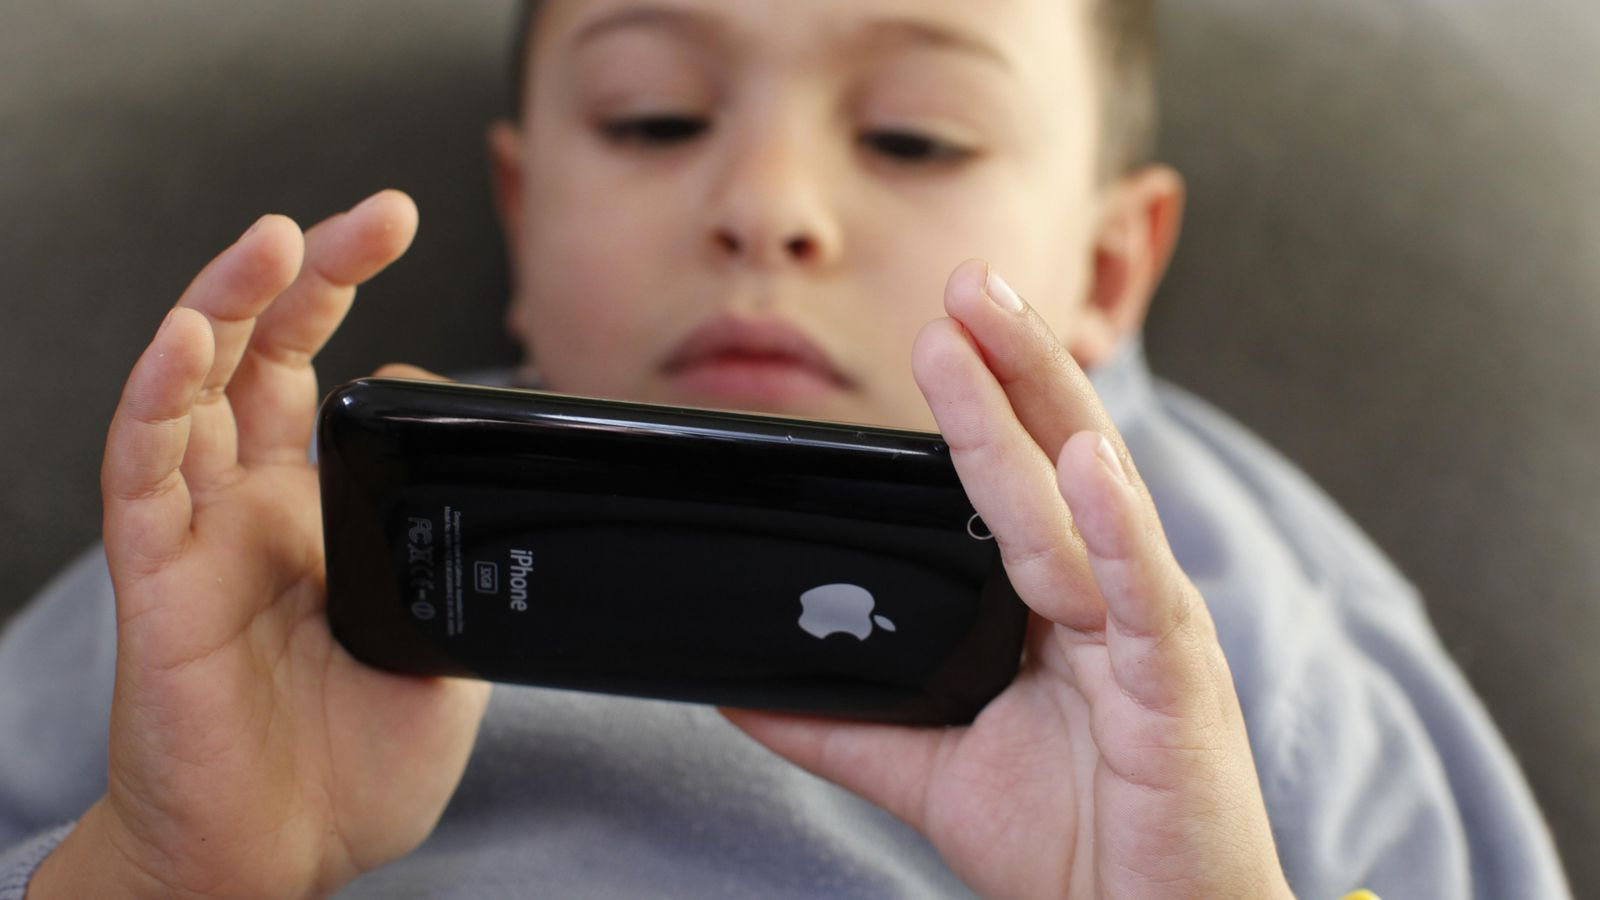 How to keep children away from 'unwanted websites'?